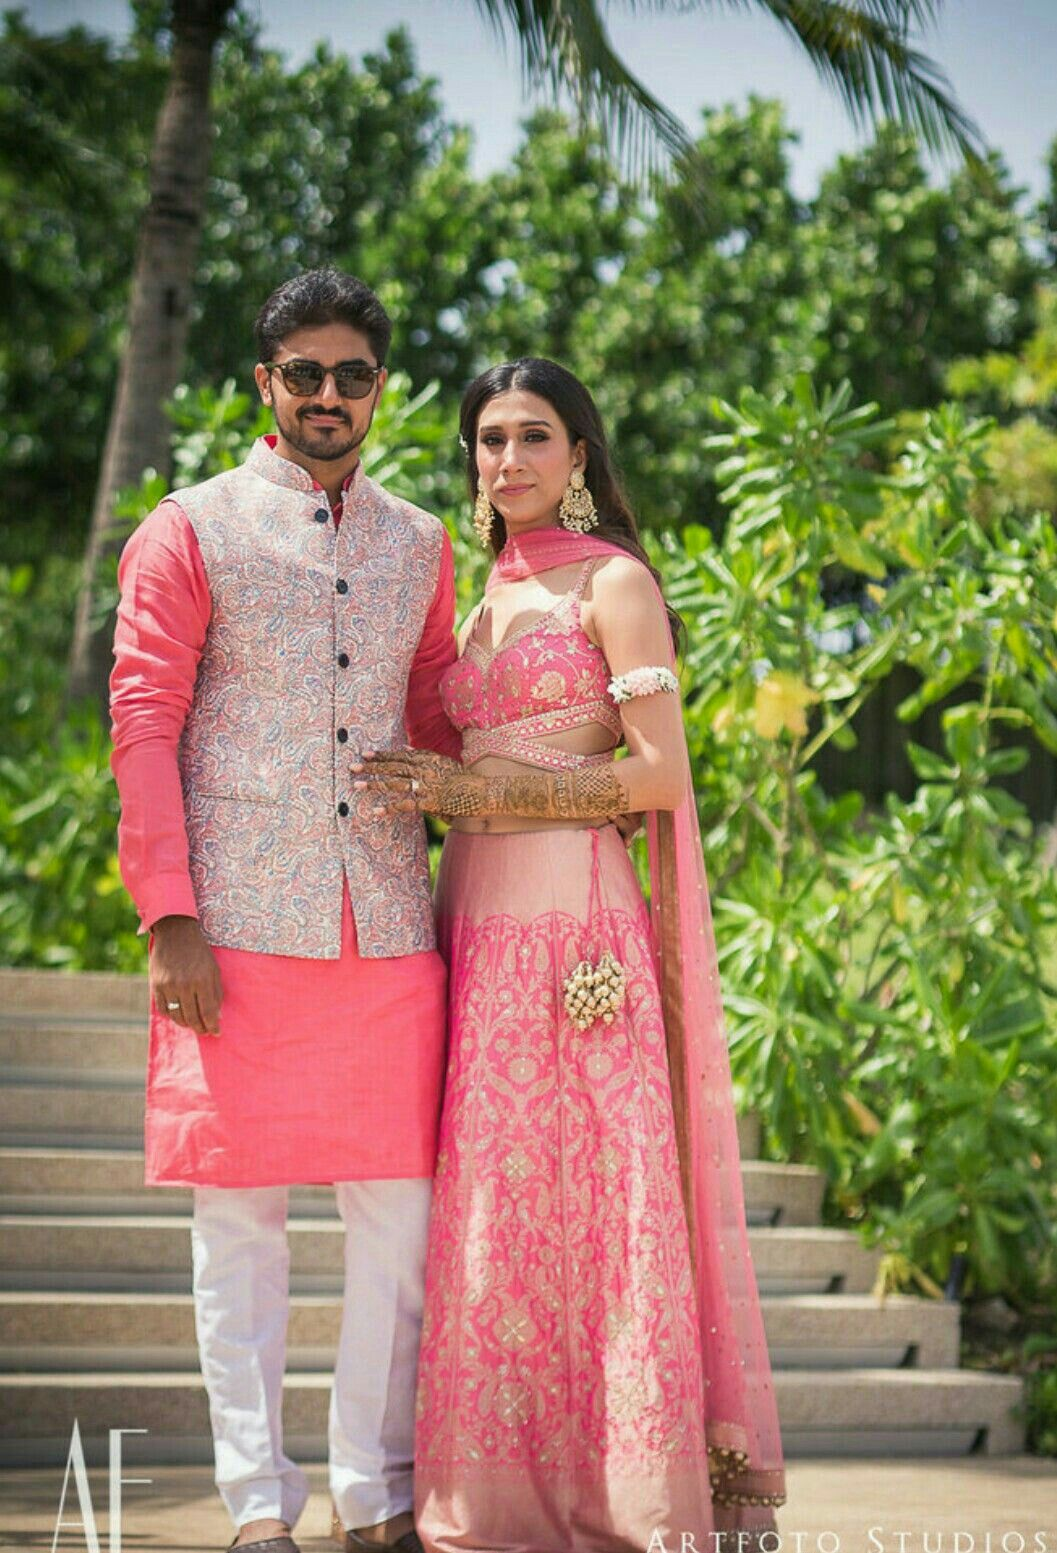 kulwinderkaur COUPLES Engagement dress for groom